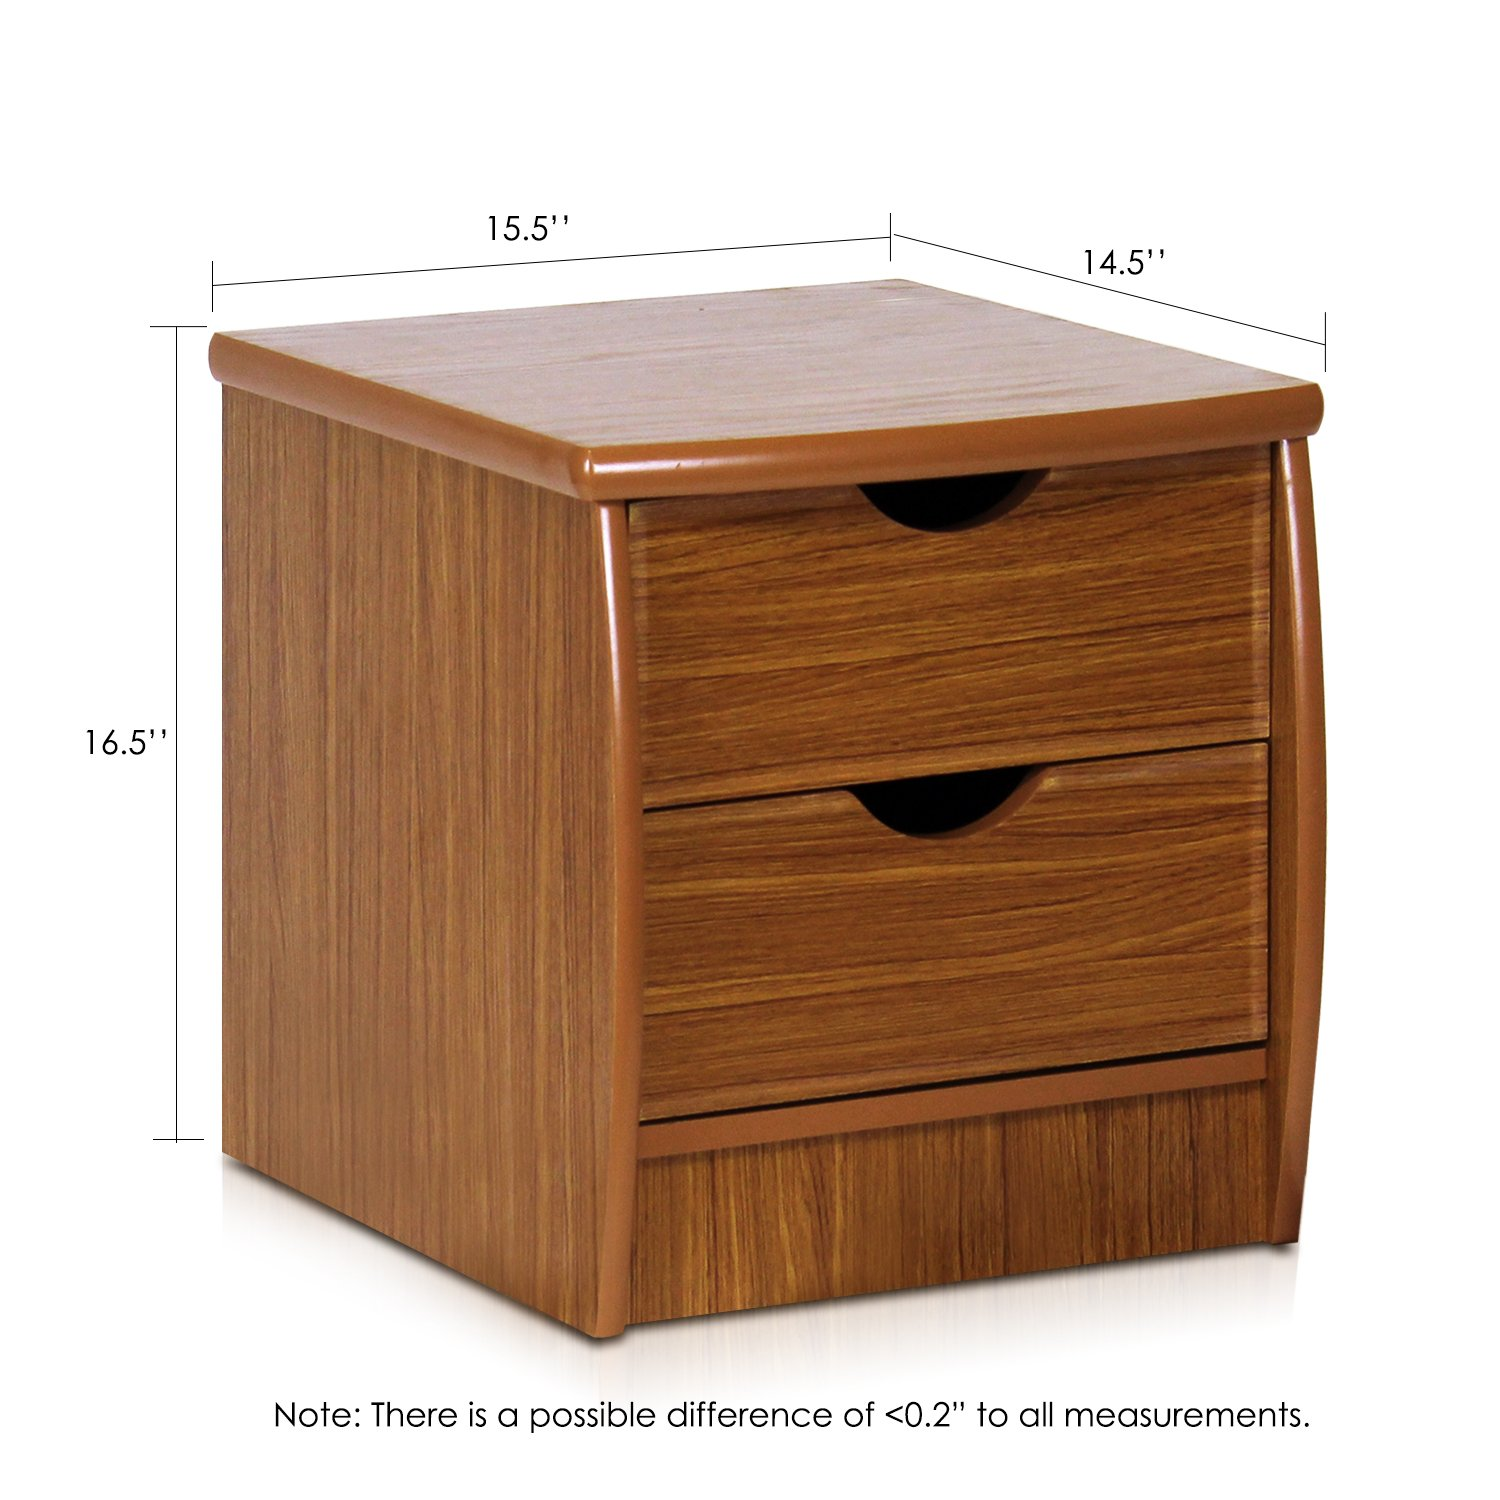 Furinno FNAK-11173EX Simple Design Bedside 2-Drawer Chest, Cherry by Furinno (Image #2)